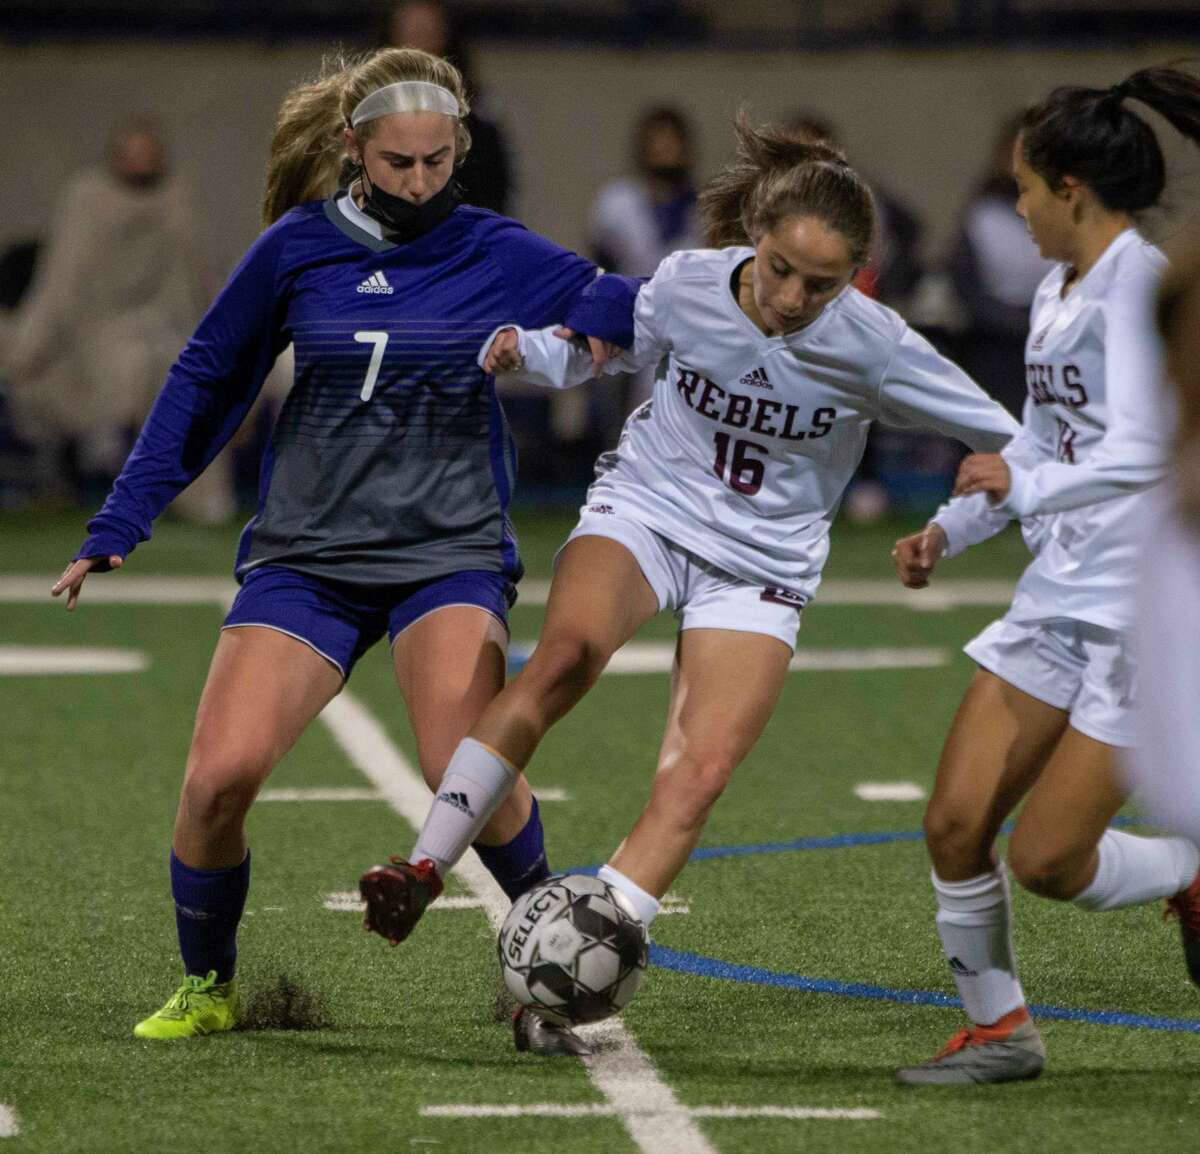 Midland High's Kinsey Hill tries to get the ball from Lee High's Karli Ramos 02/09/2021 at Grande Communications Stadium. Tim Fischer/Reporter-Telegram